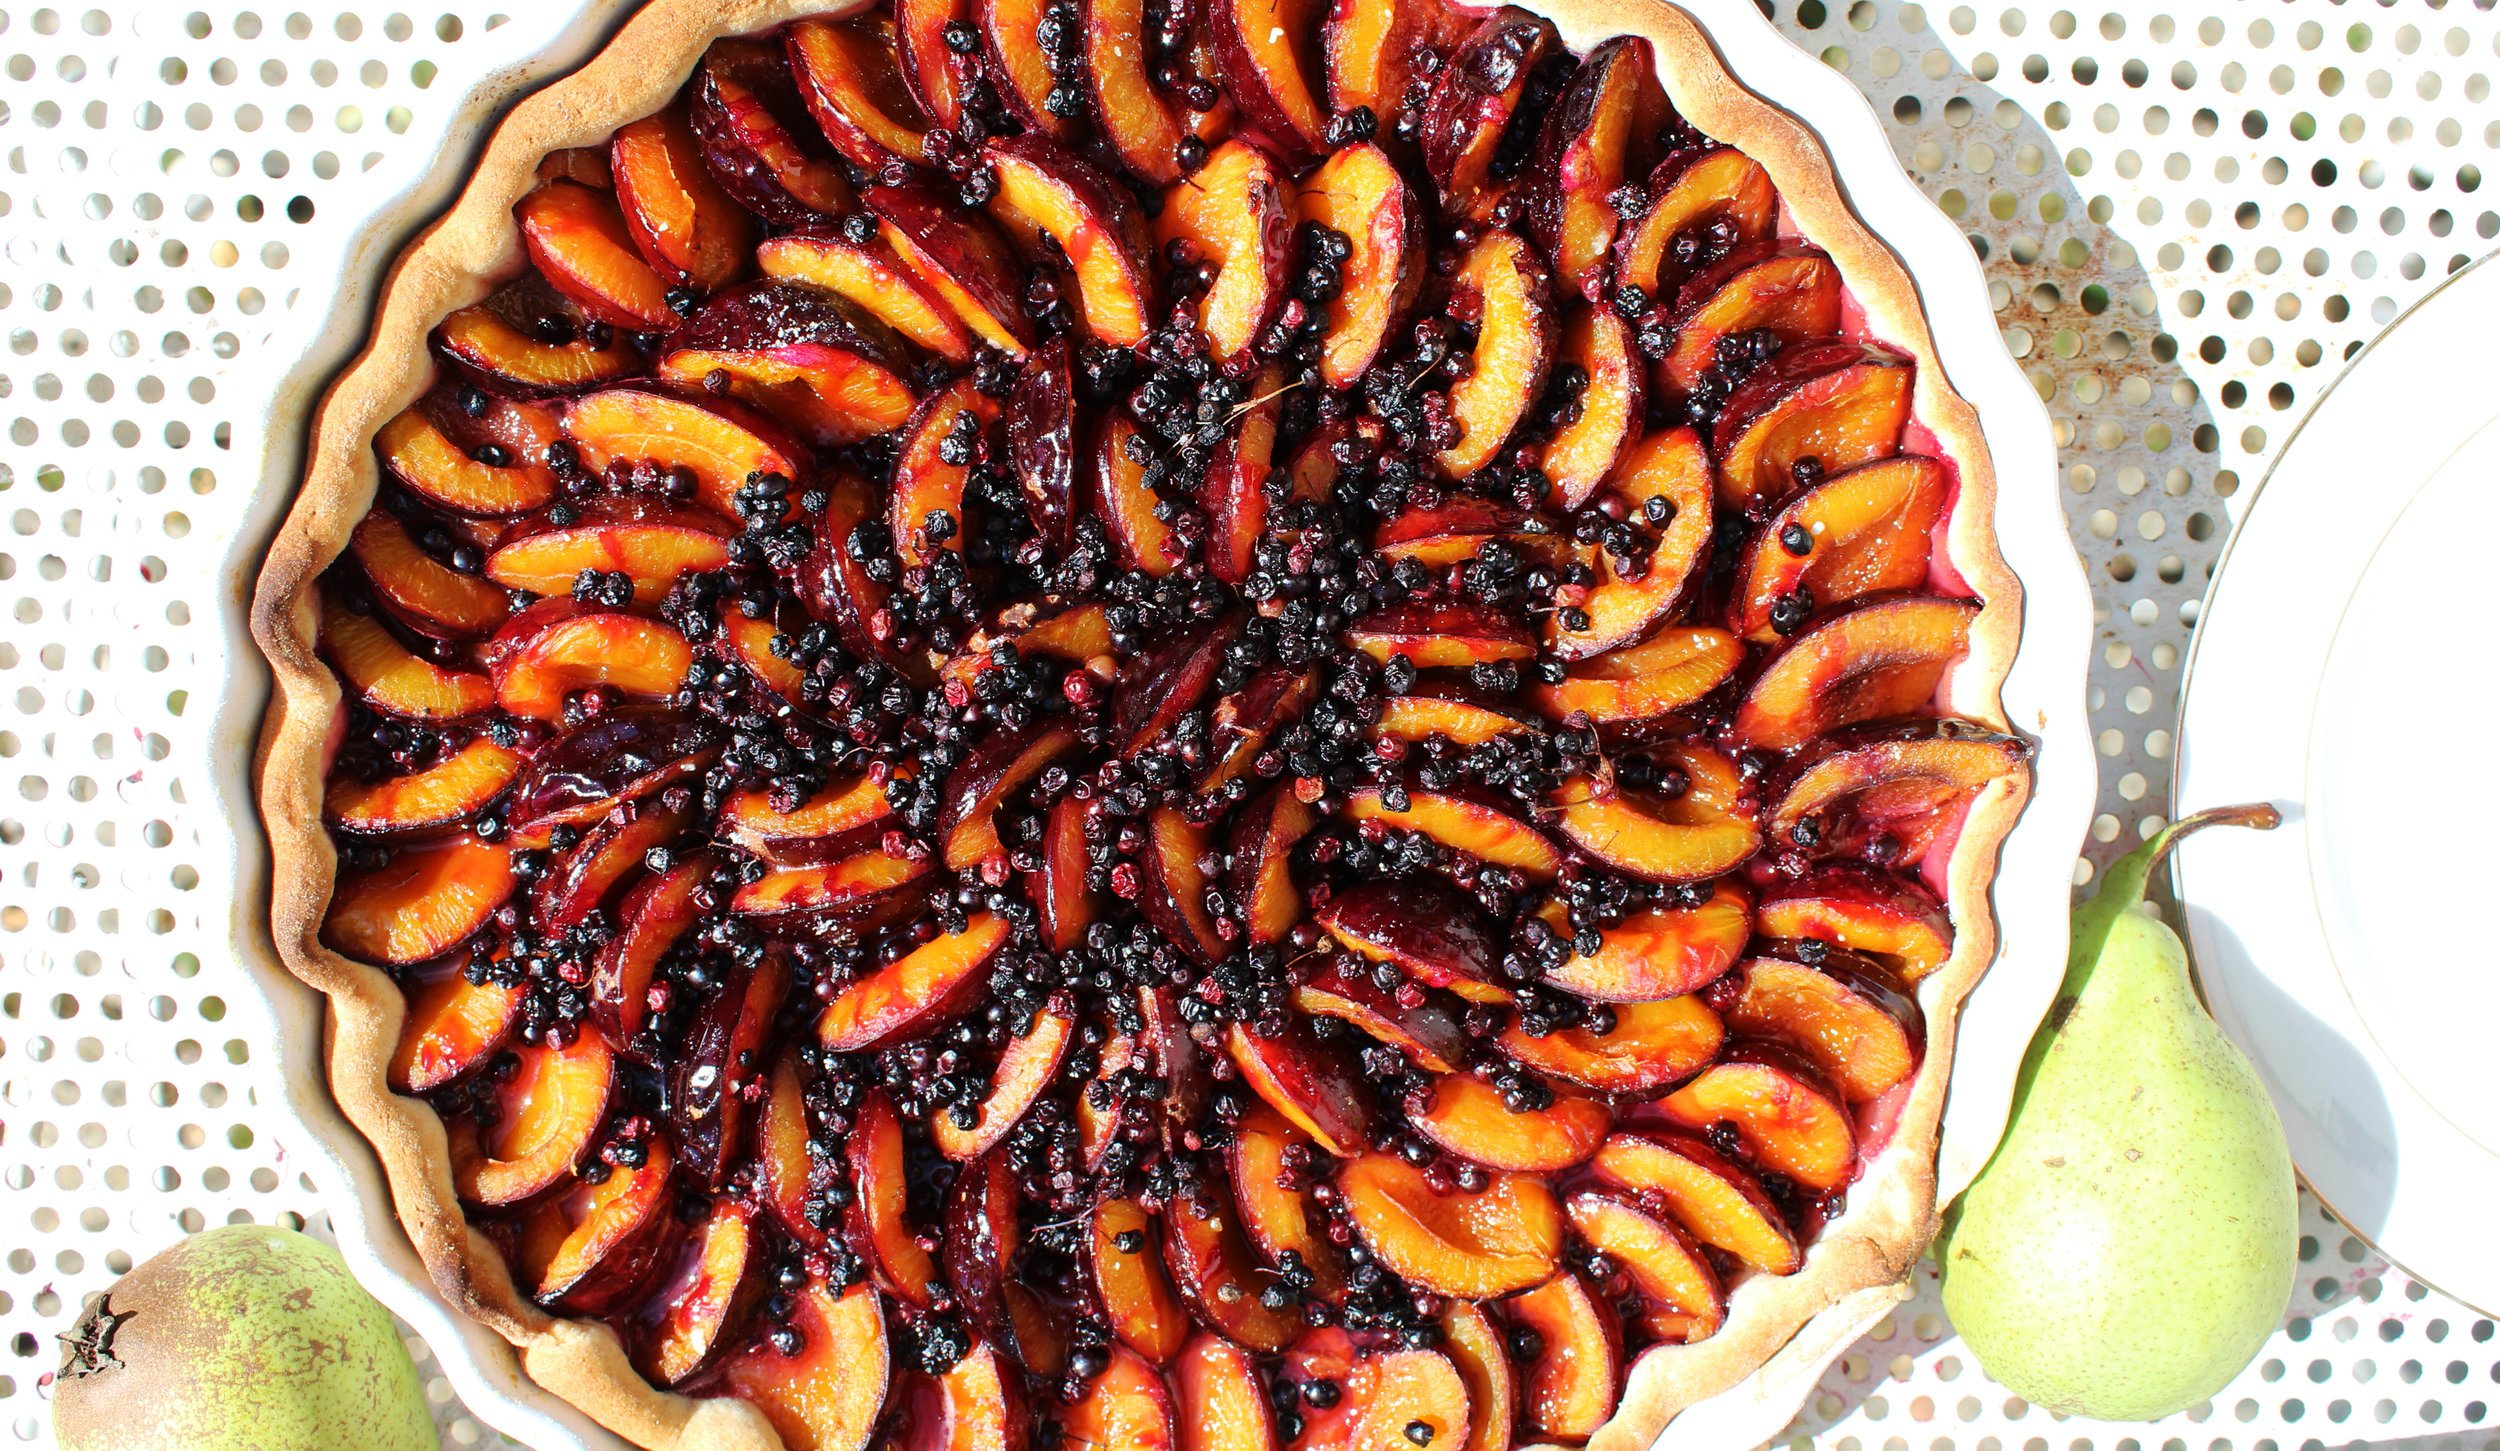 Recipe of my quetsch tart - First of all, preheat oven 180° C/ 350 FIngredient list:- 800gr of tasty quetsch plums- half a tea spoon of cinnamon- a pinch of crushed red Cayenne pepper- 3 spoons of organic honey limeTo make the dough you need- 100gr of soft butter- 50gr of powdered almond- 1 egg- 190 gr of white organic flour- 80 gr of icing sugar